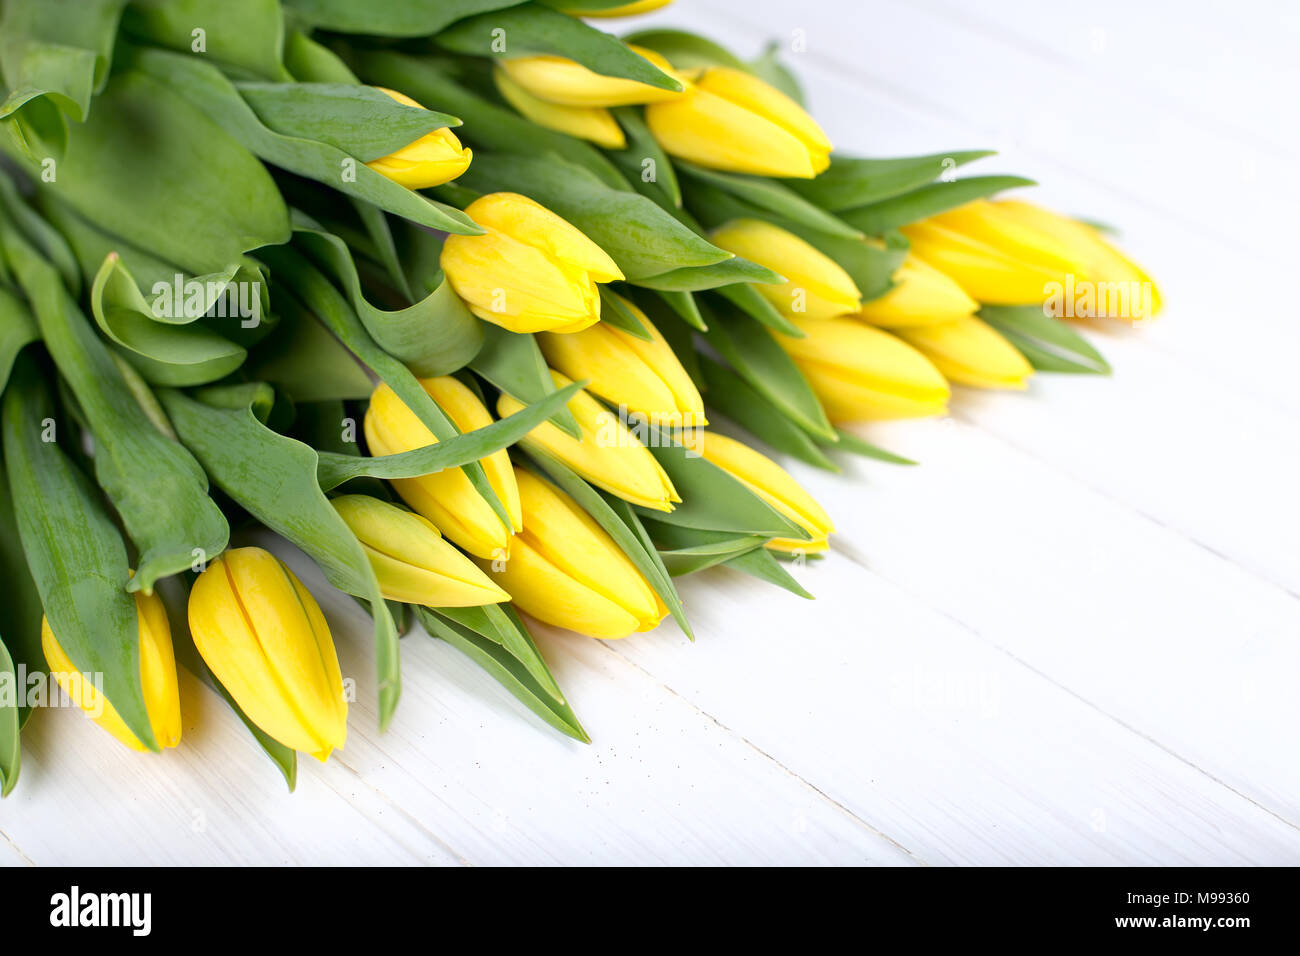 Bright Flowers With Greenery Stock Photos Bright Flowers With